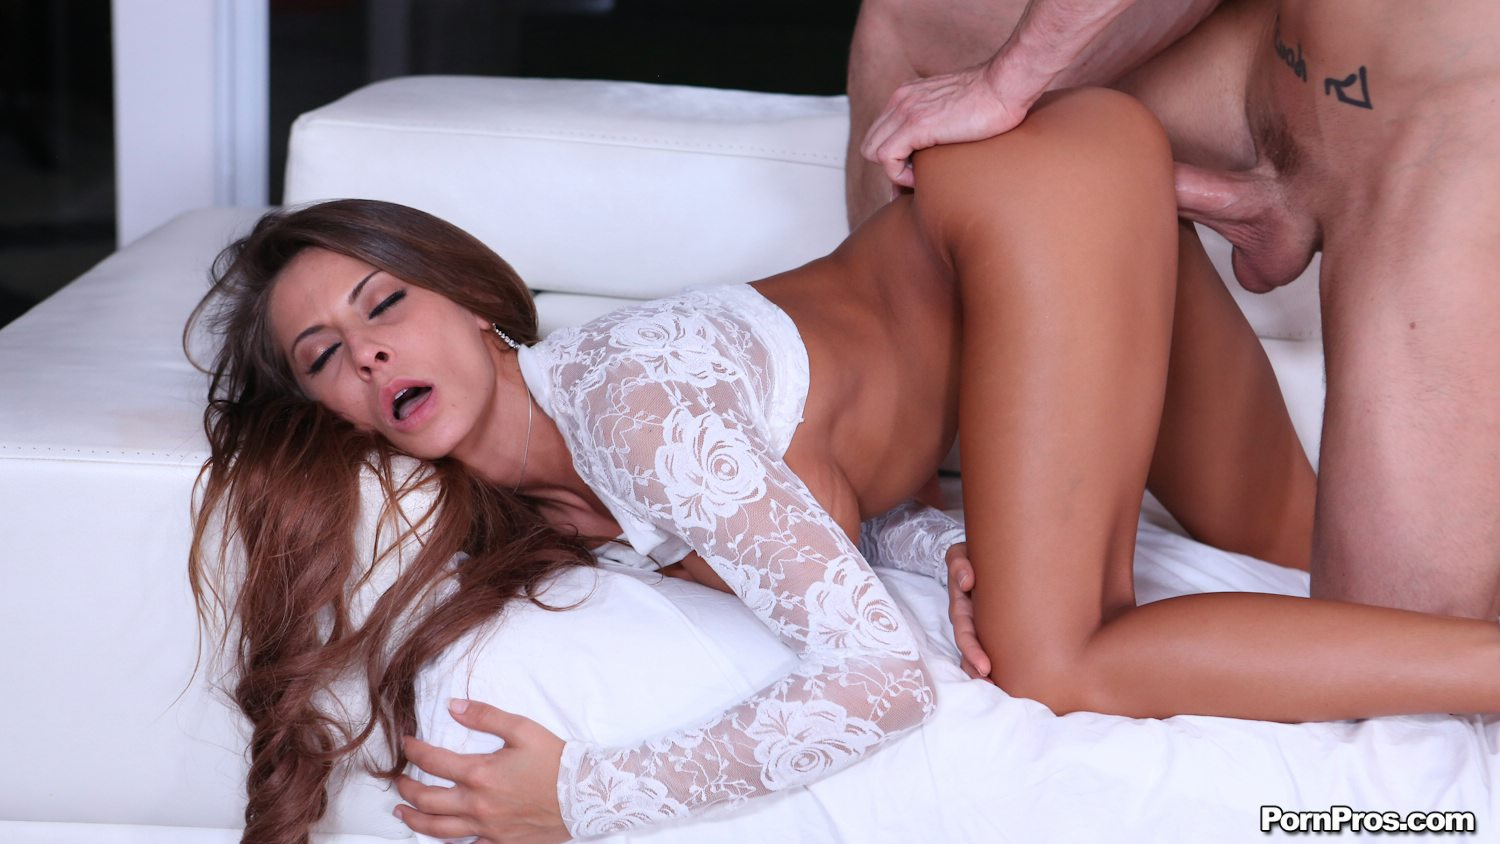 madison-ivy-sex-hot-porn-sexy-fucking